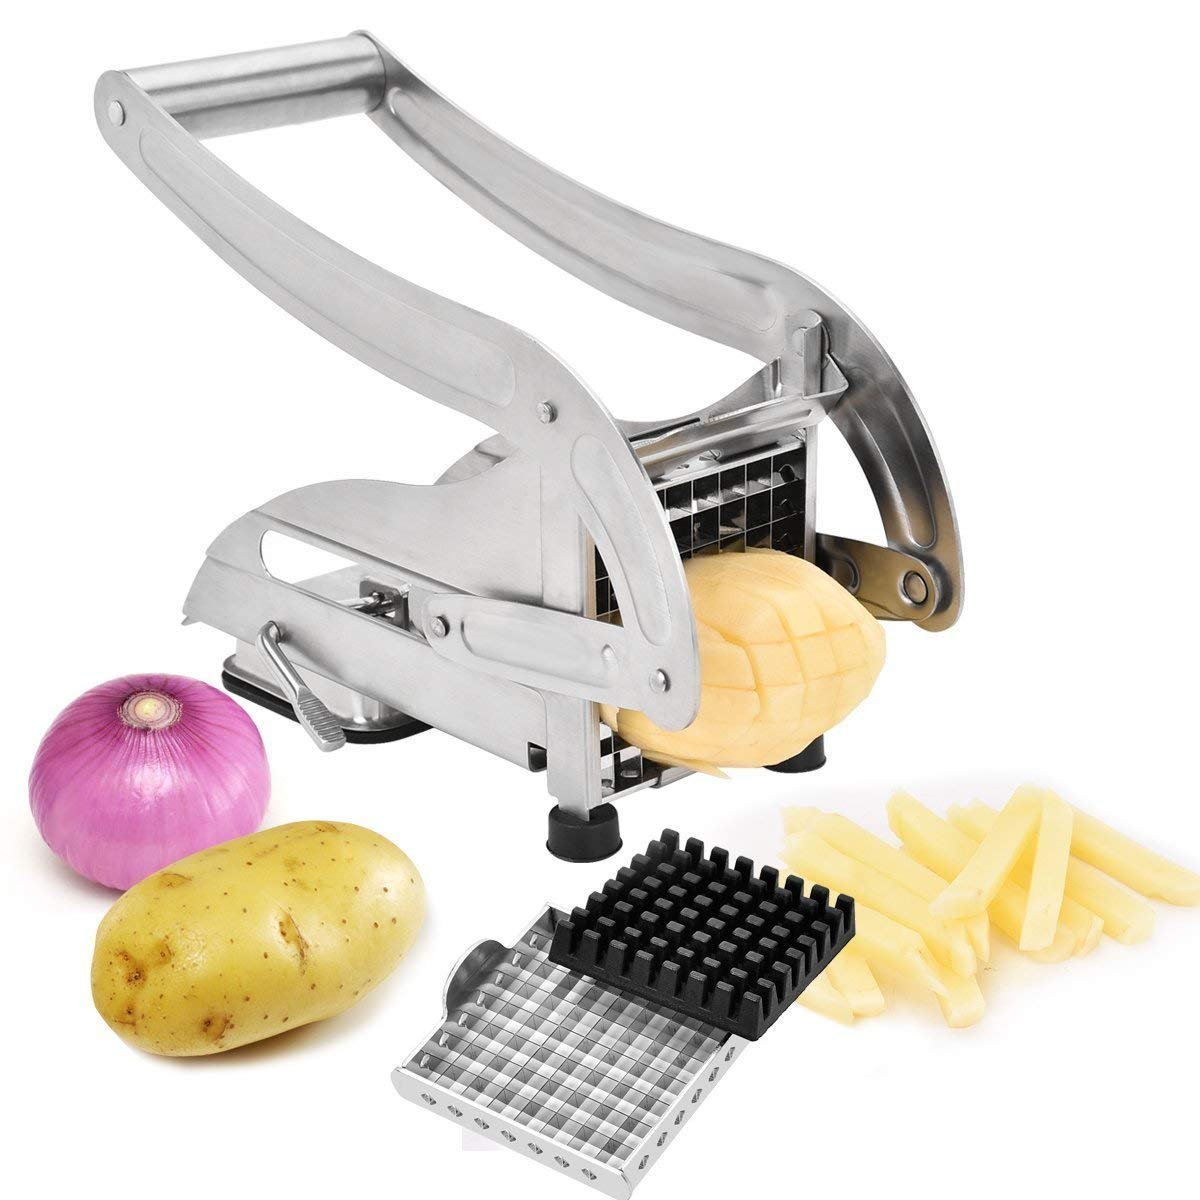 IKOCO Homemade Potato Chip Chipper with 2 Thickness Adjustable Stainless Steel Blades and Non-Slip Suction